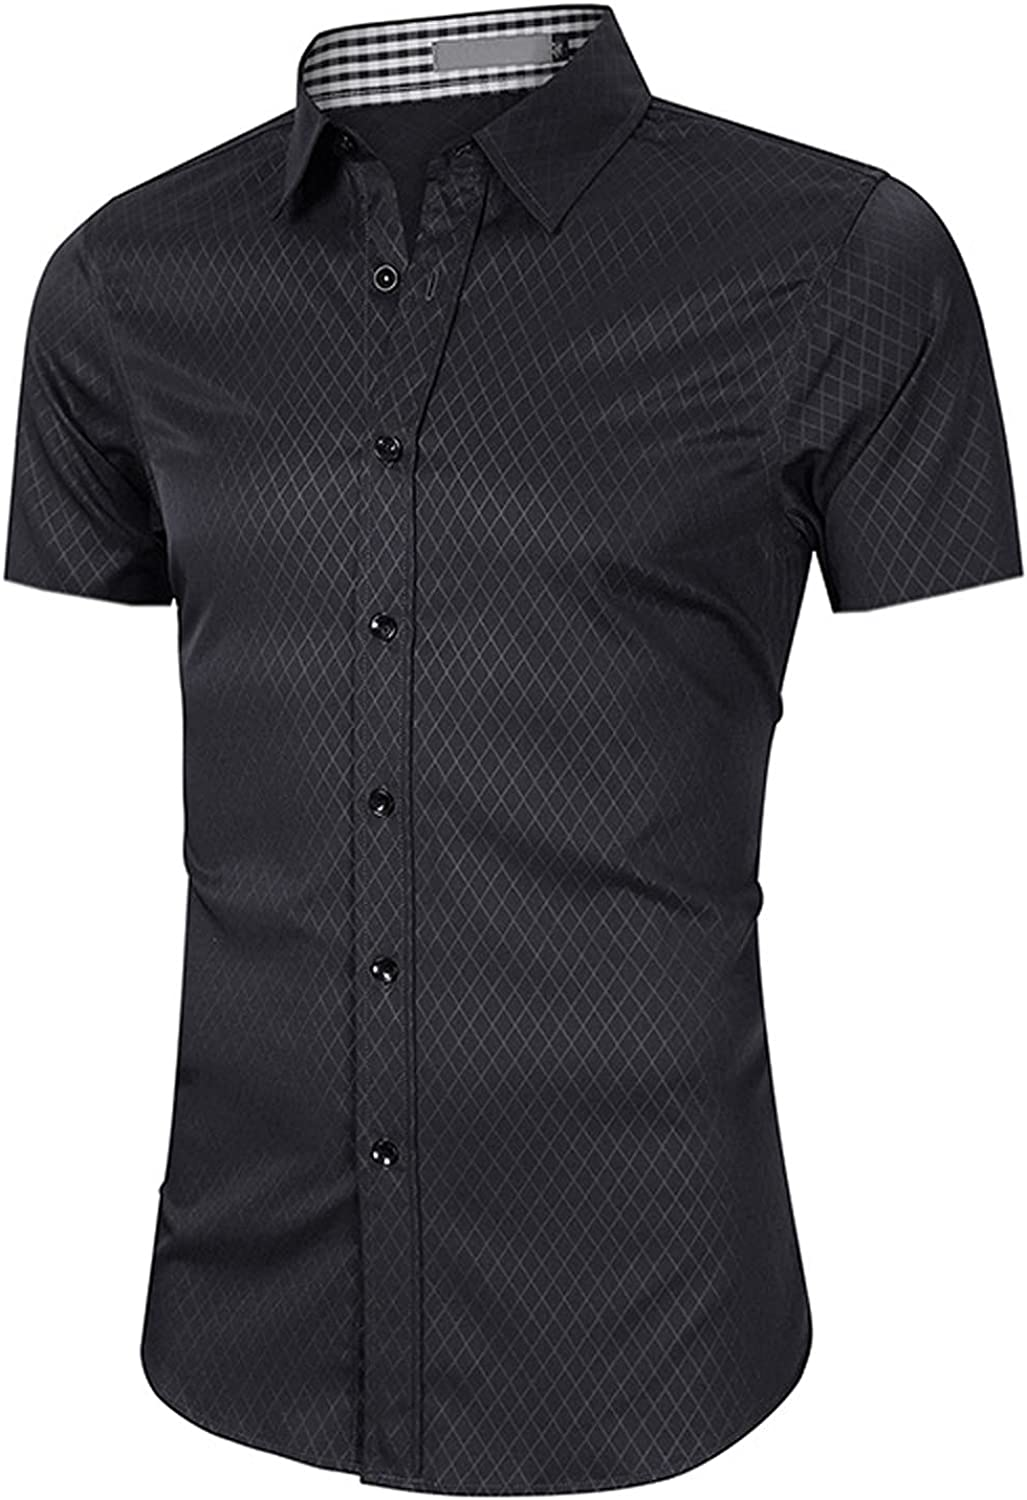 HEXILIN Men's Short Sleeve Henley Shirt Casual Button Down Slimming Blouse Fashion Summer Breathable Business Blouse